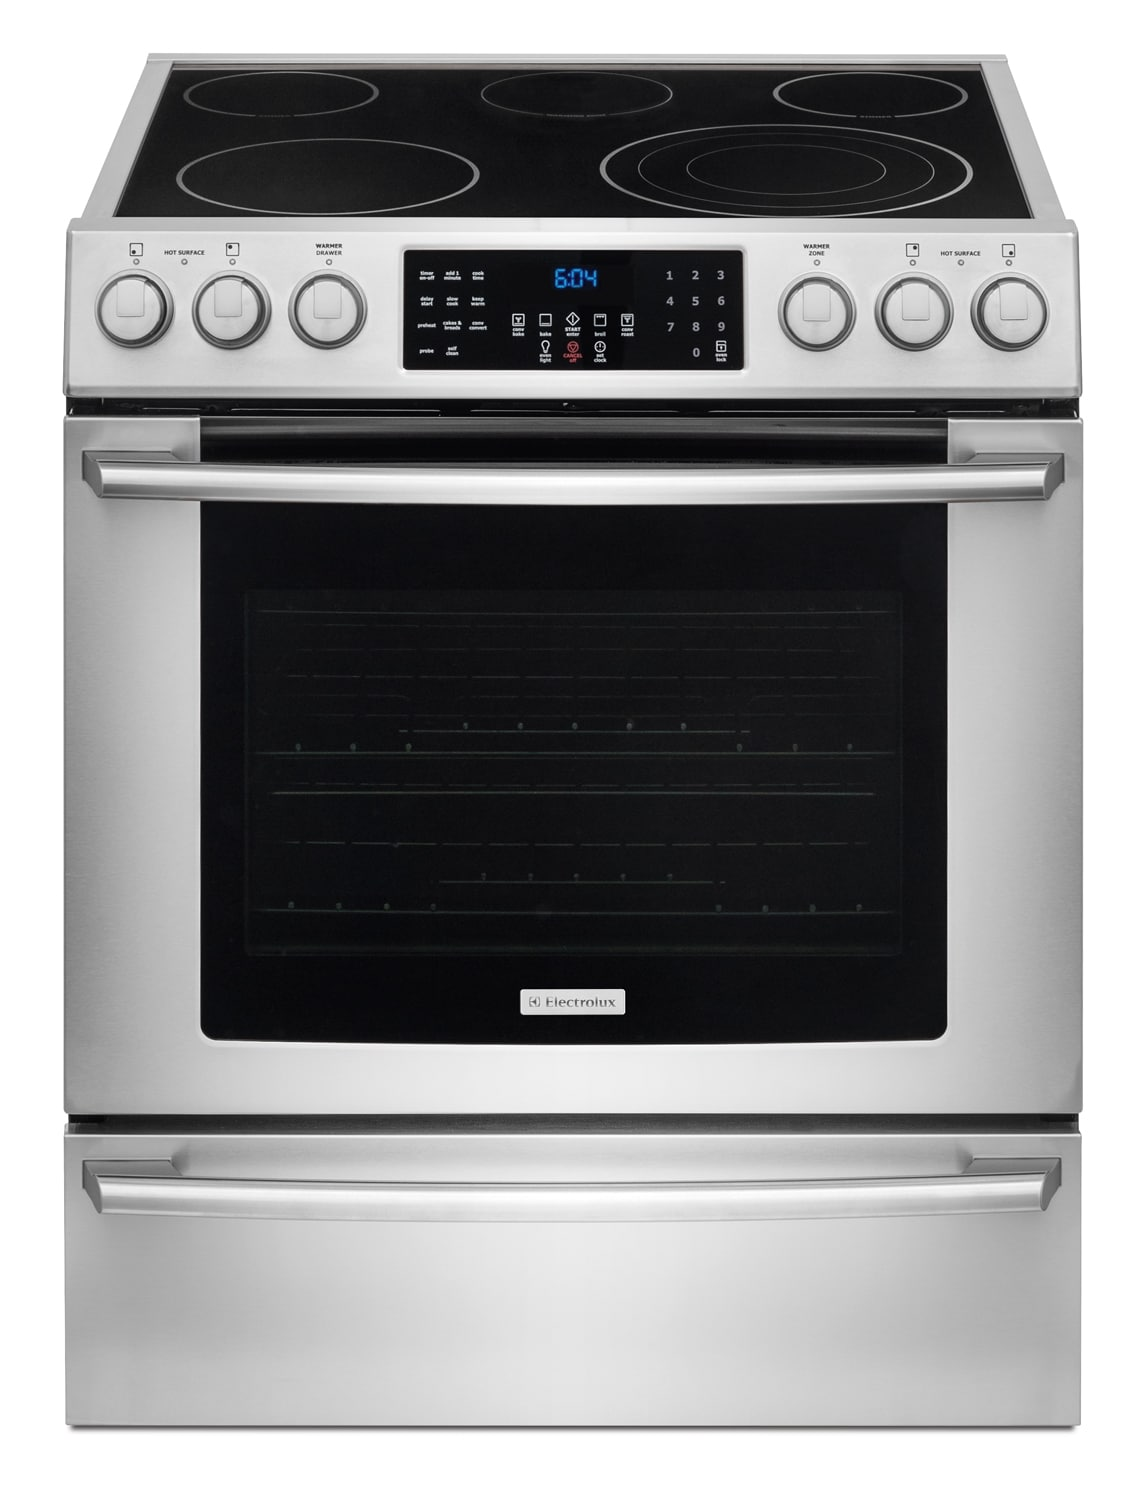 Cooking Products - Electrolux 4.6 Cu. Ft. Front-Control Freestanding Electric Range - Stainless Steel